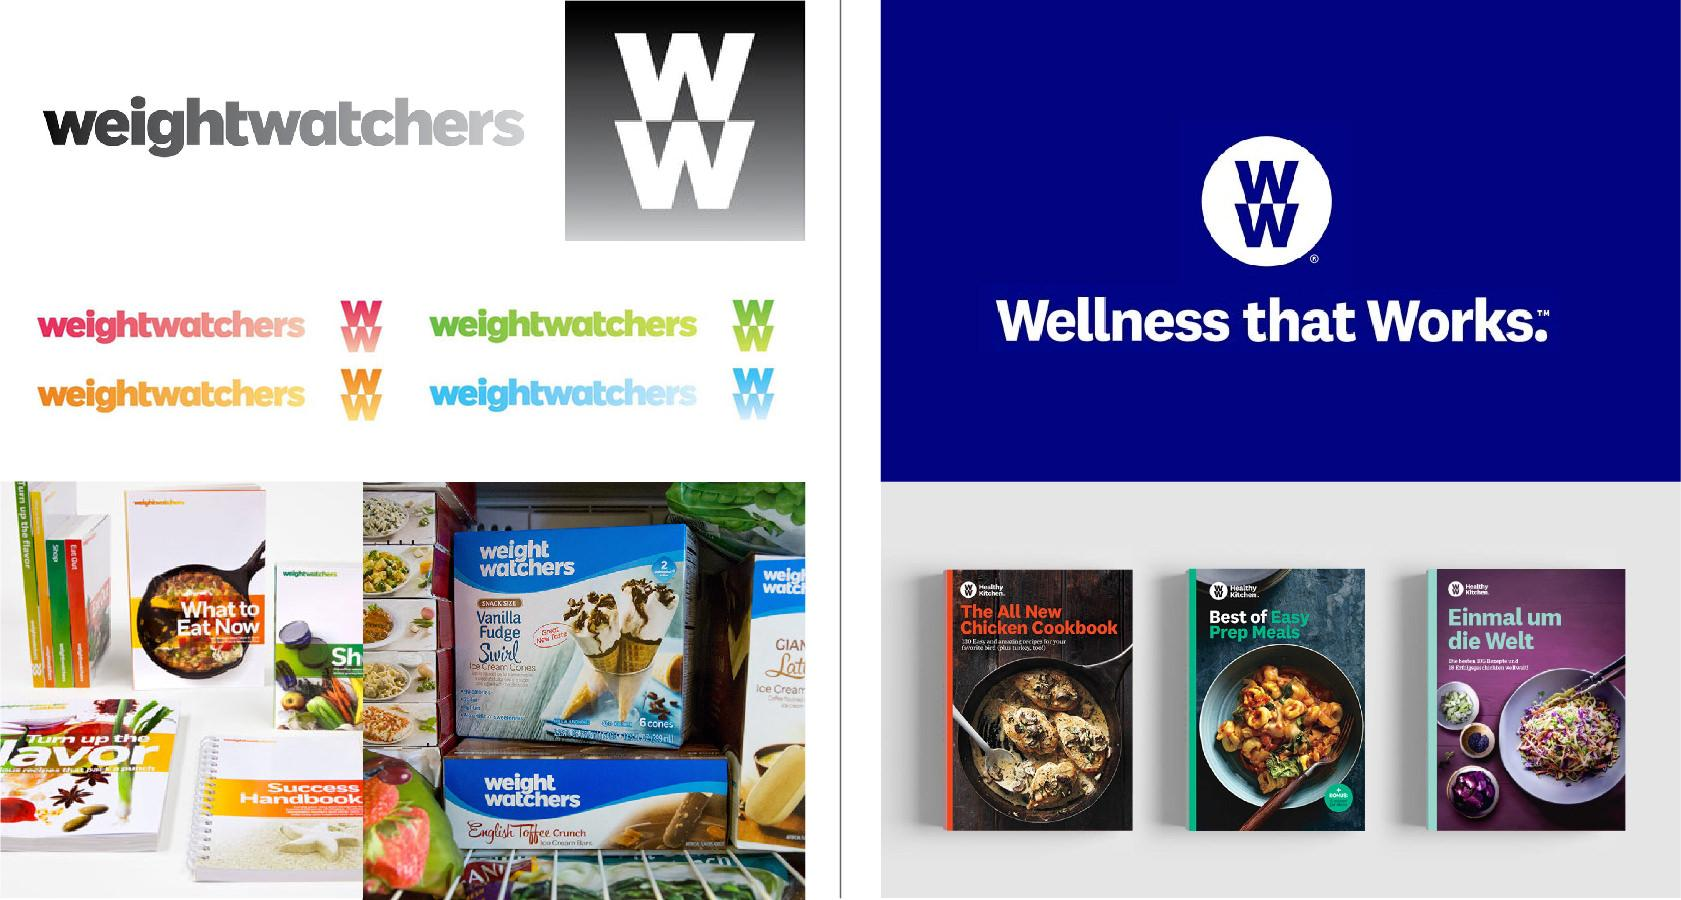 Weight Watchers changed too much in a rebranding proposal.